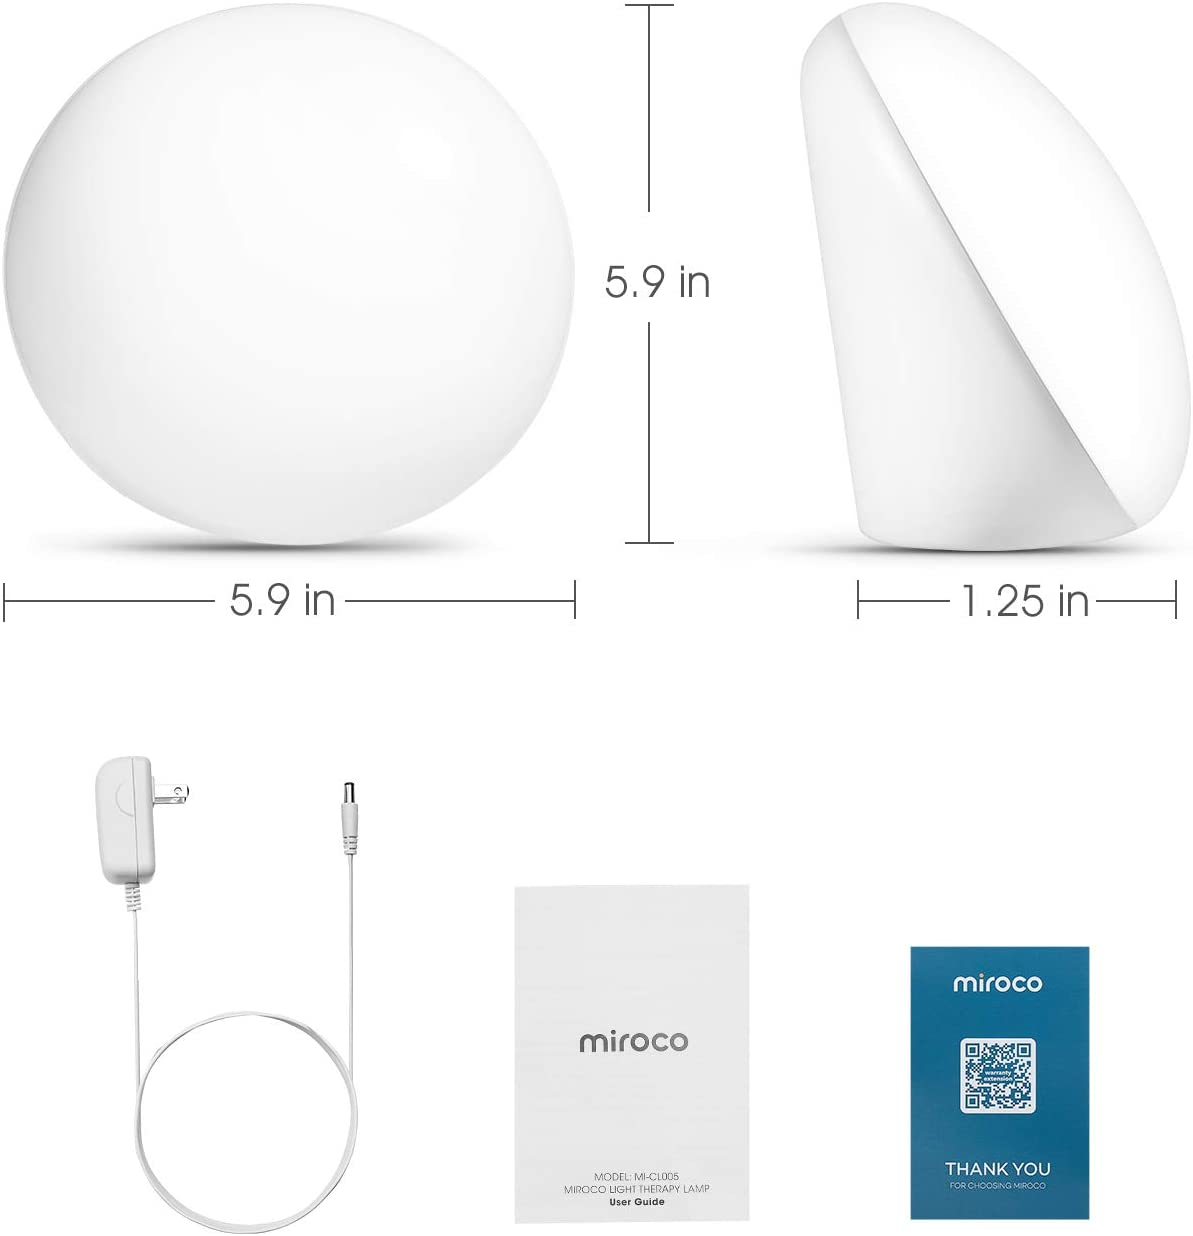 Miroco Light Therapy Lamp, UV-Free 10000 Lux LED Bright White Therapy Light, Touch Control with 3 Adjustable Brightness Levels, Memory Function & Compact Size for a Happy Life